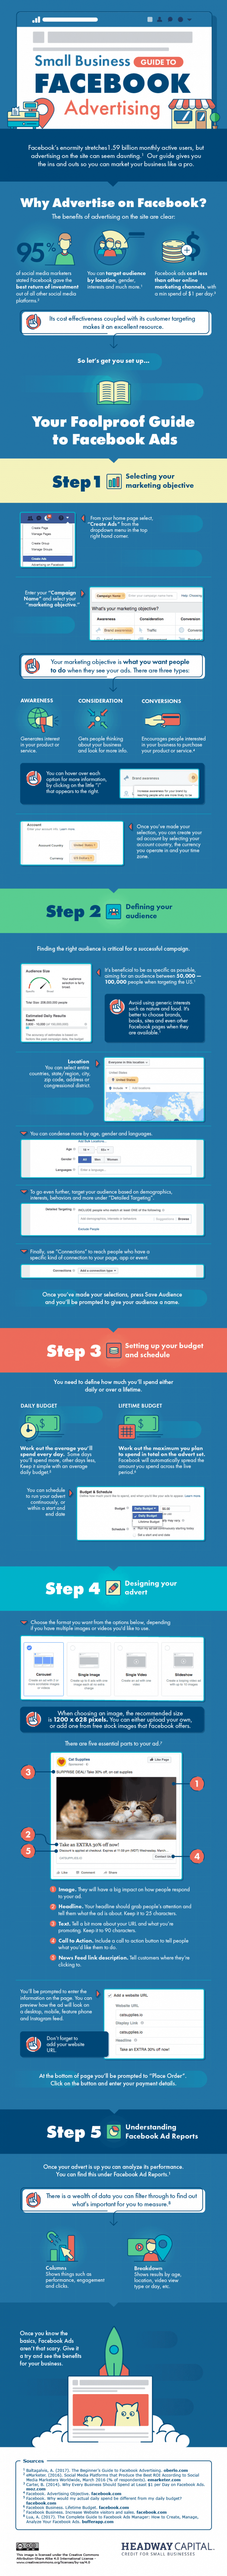 Infographic showing a short guide on how to advertise on Facebook as a small business owner